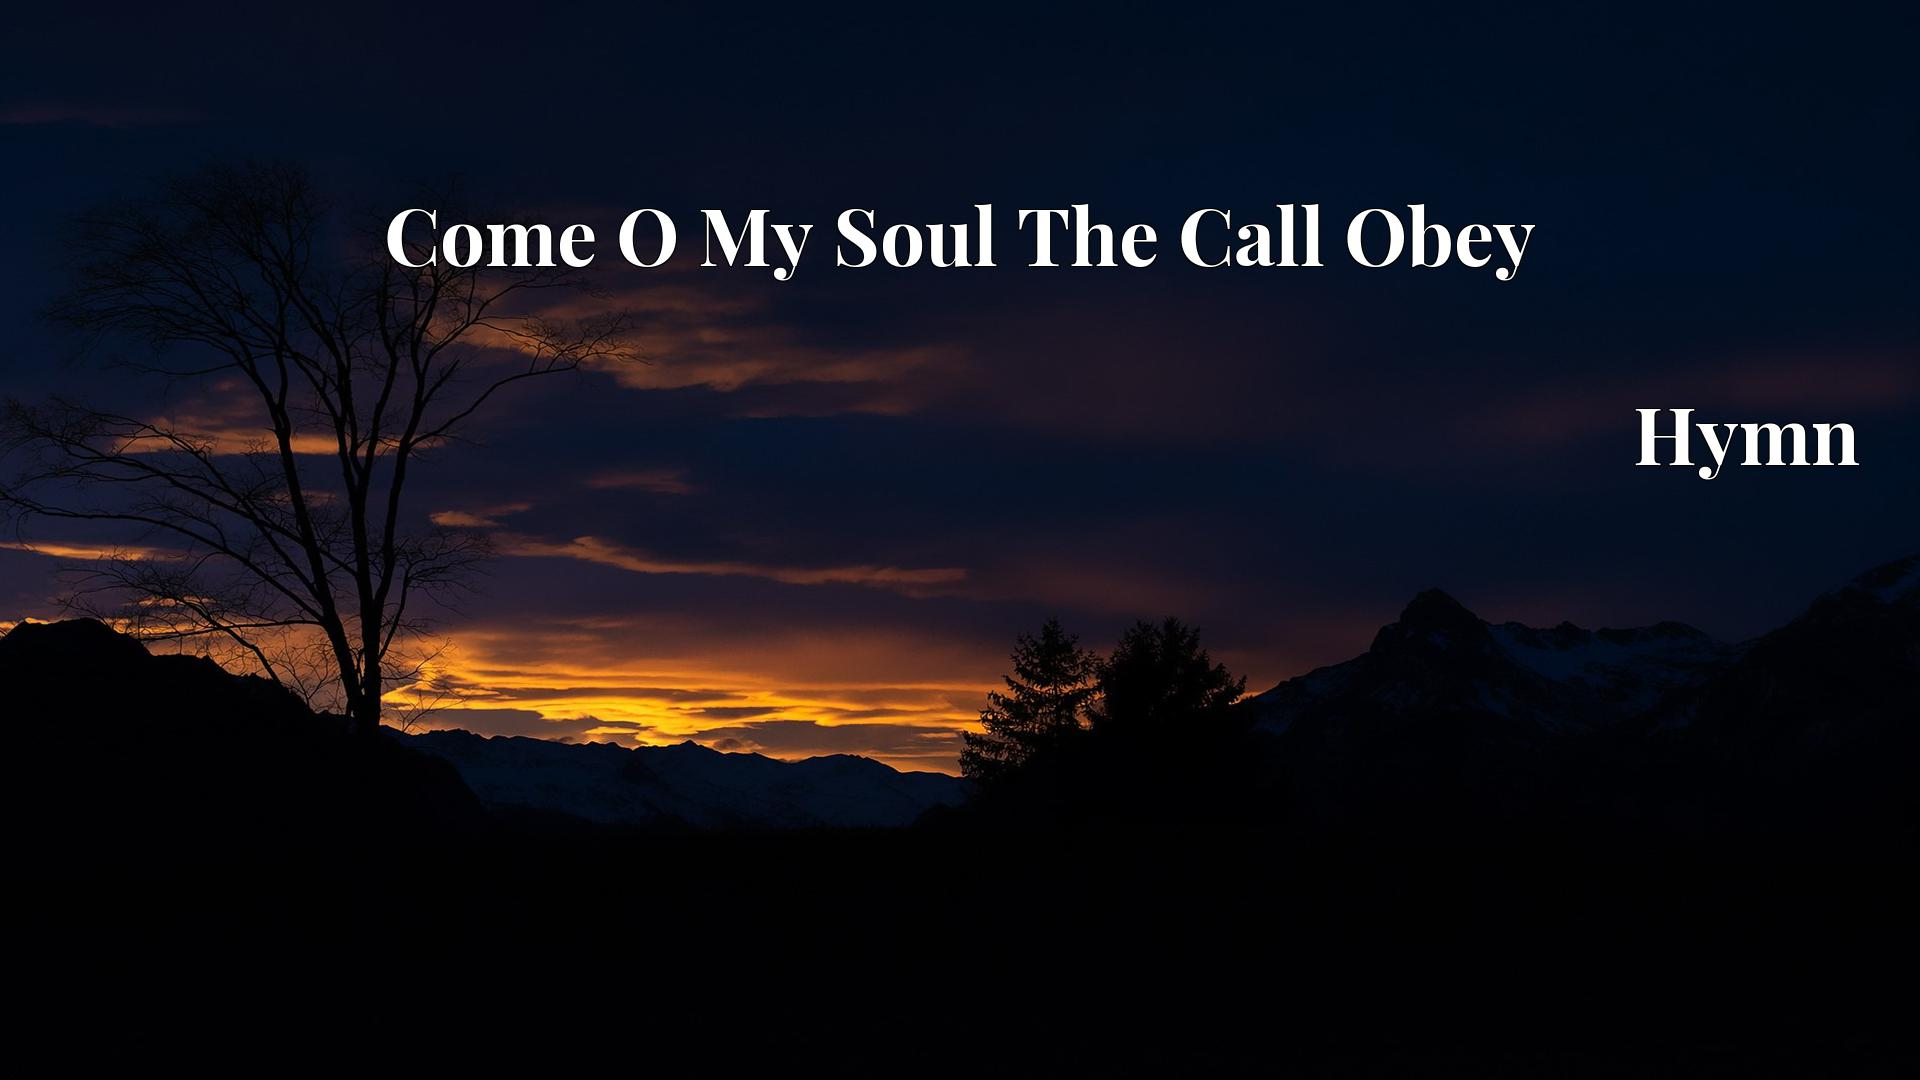 Come O My Soul The Call Obey - Hymn